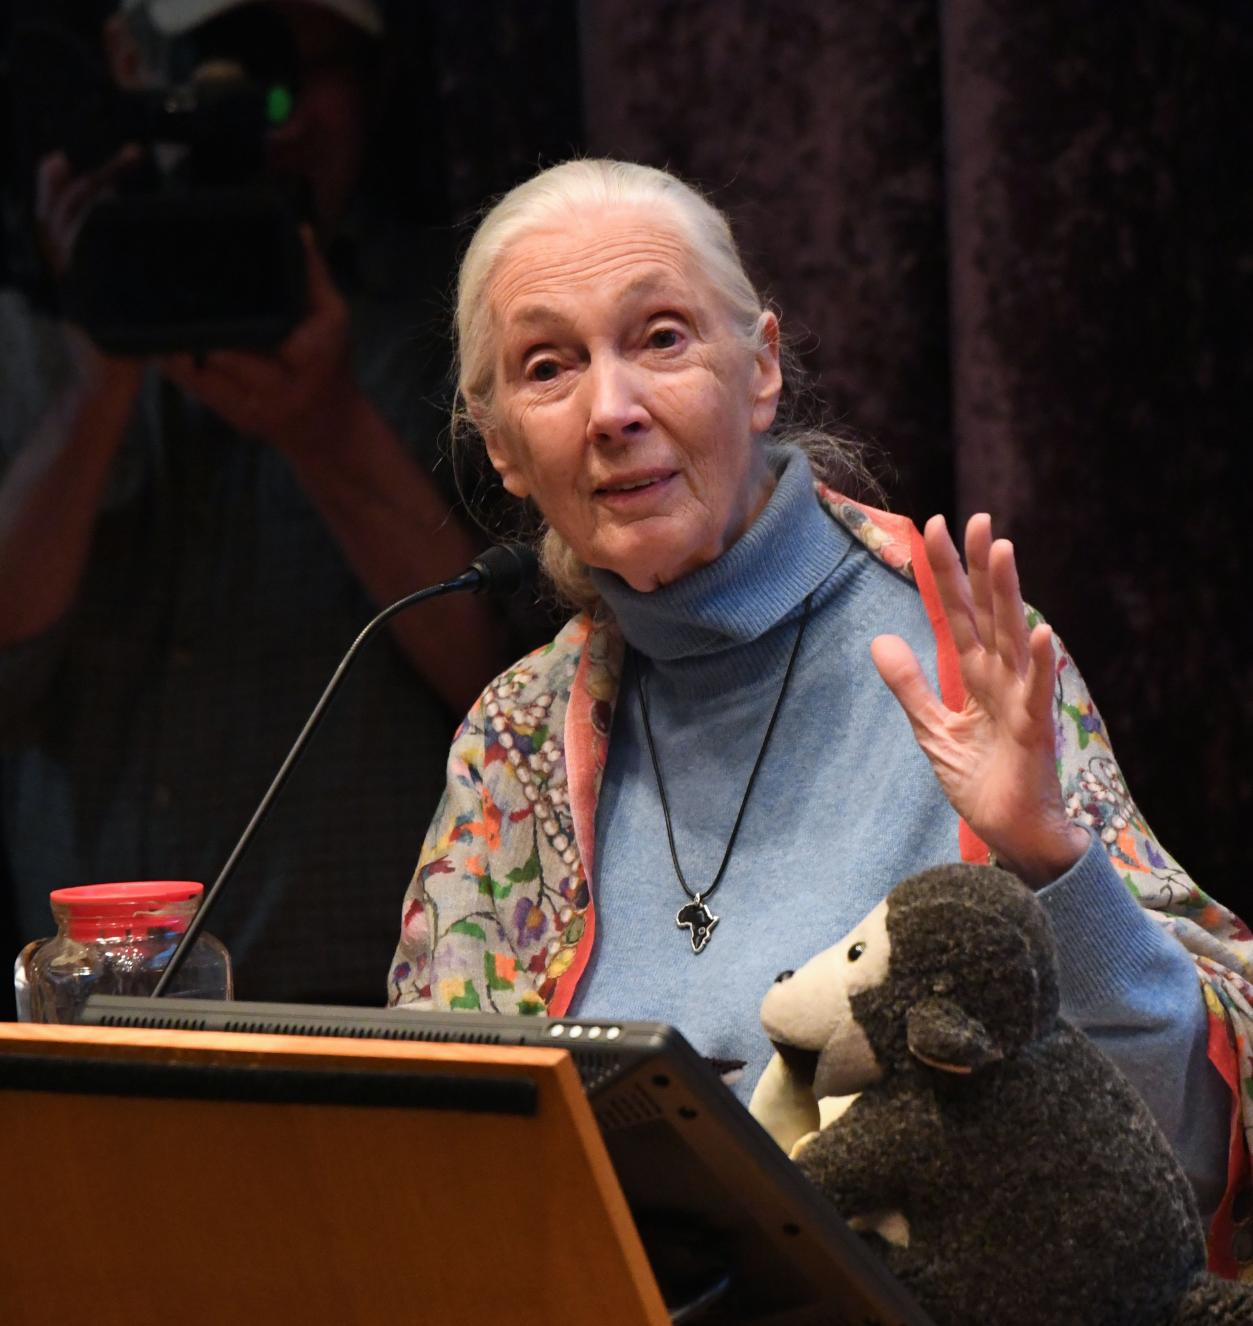 Jane Goodall speaking at a podium